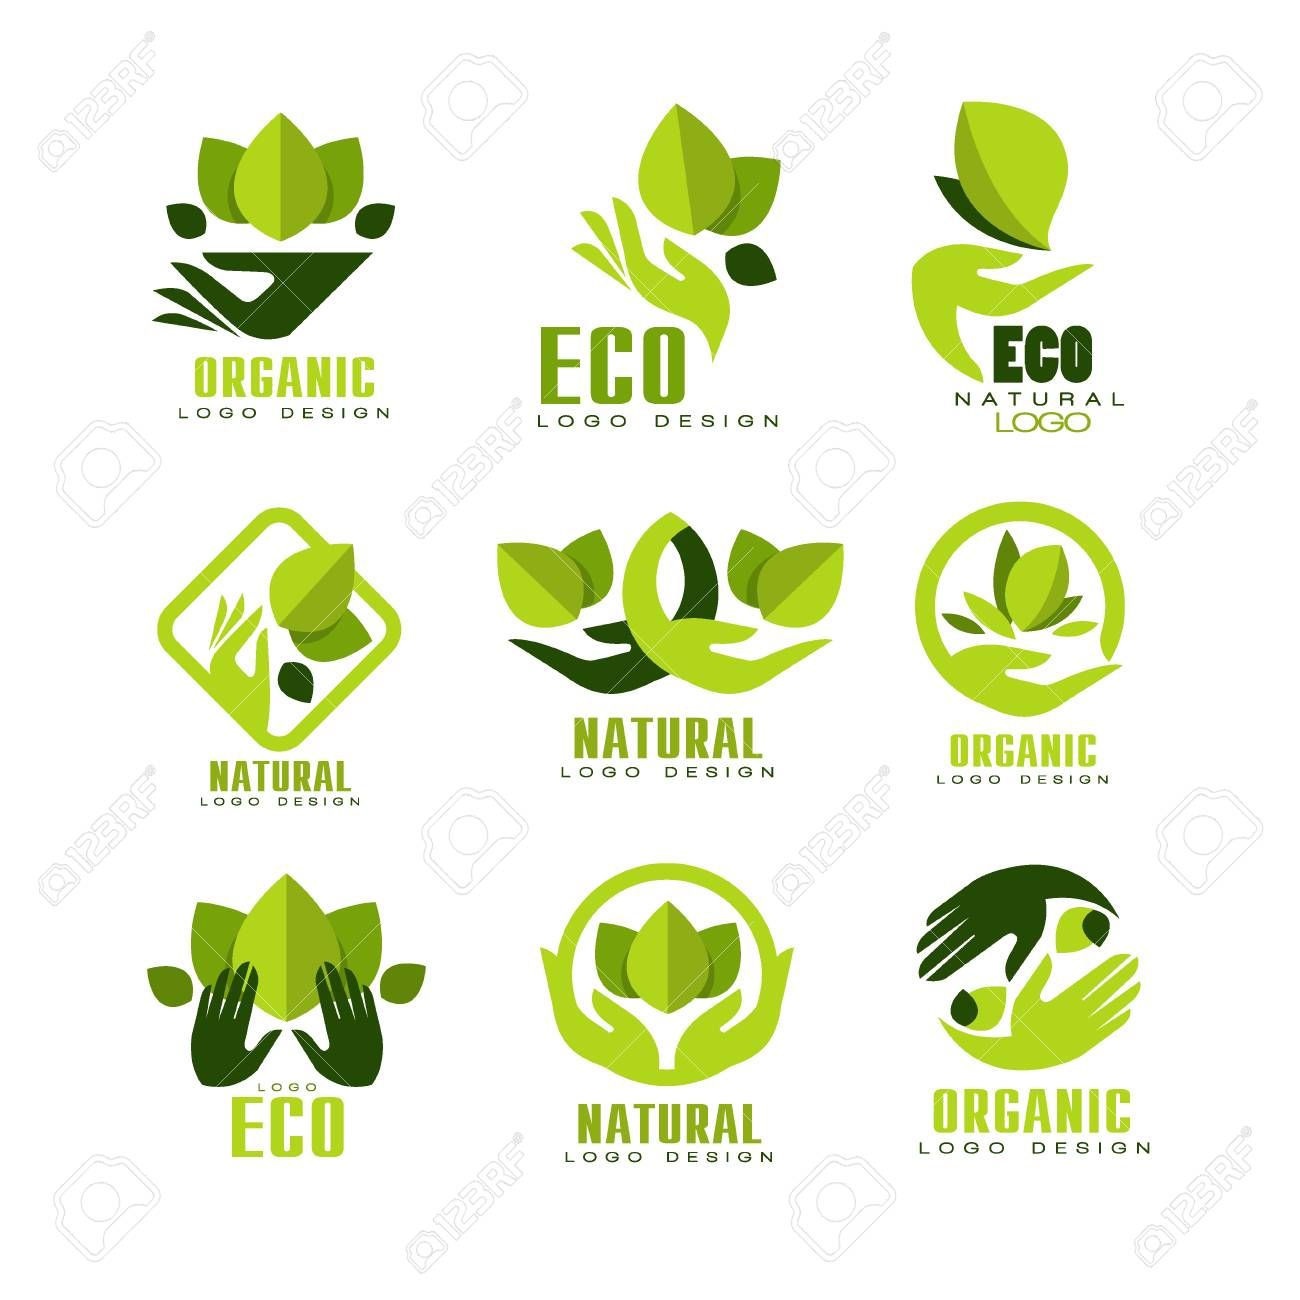 Eco, organic logo design set, premium quality natural product label , emblem for cafe, packaging, restaurant, farm products vector Illustrations on a white background - 99729344